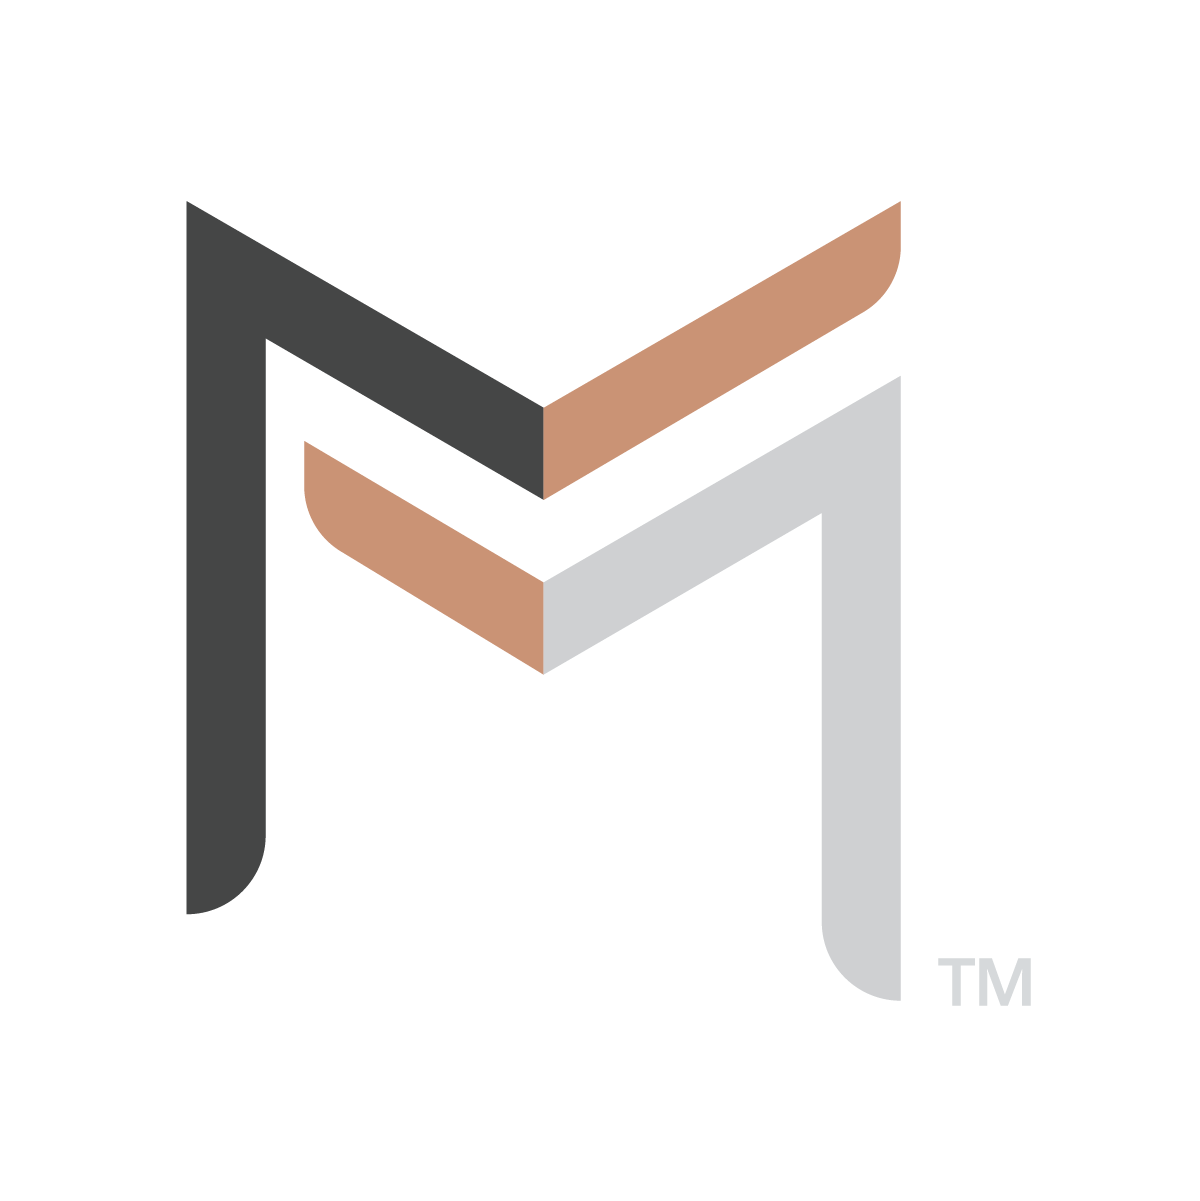 company logo for The Equitect™  of the letter m layered